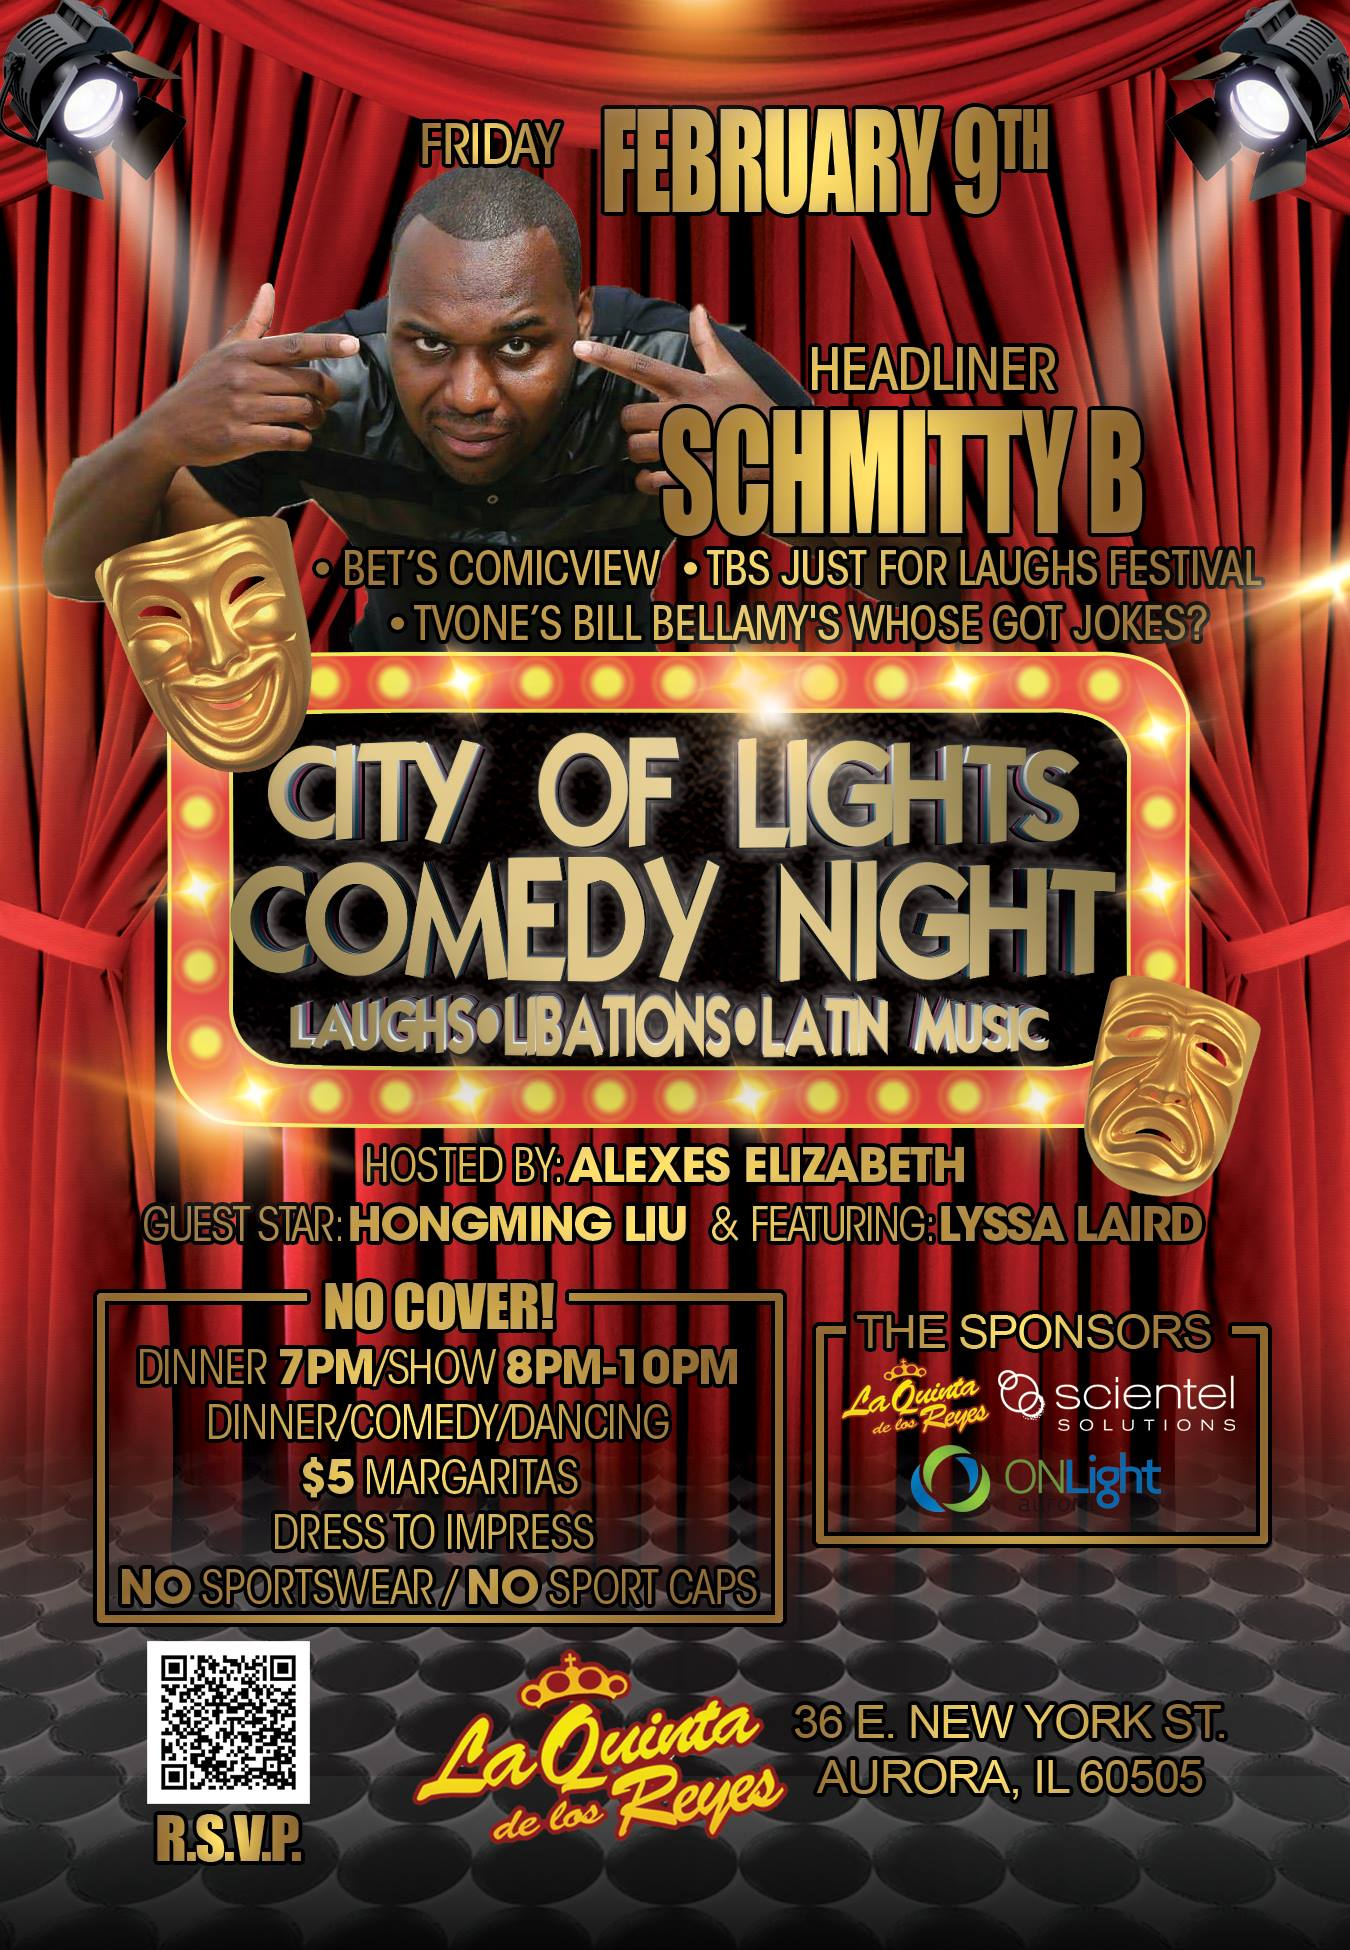 The City of Lights Comedy Night